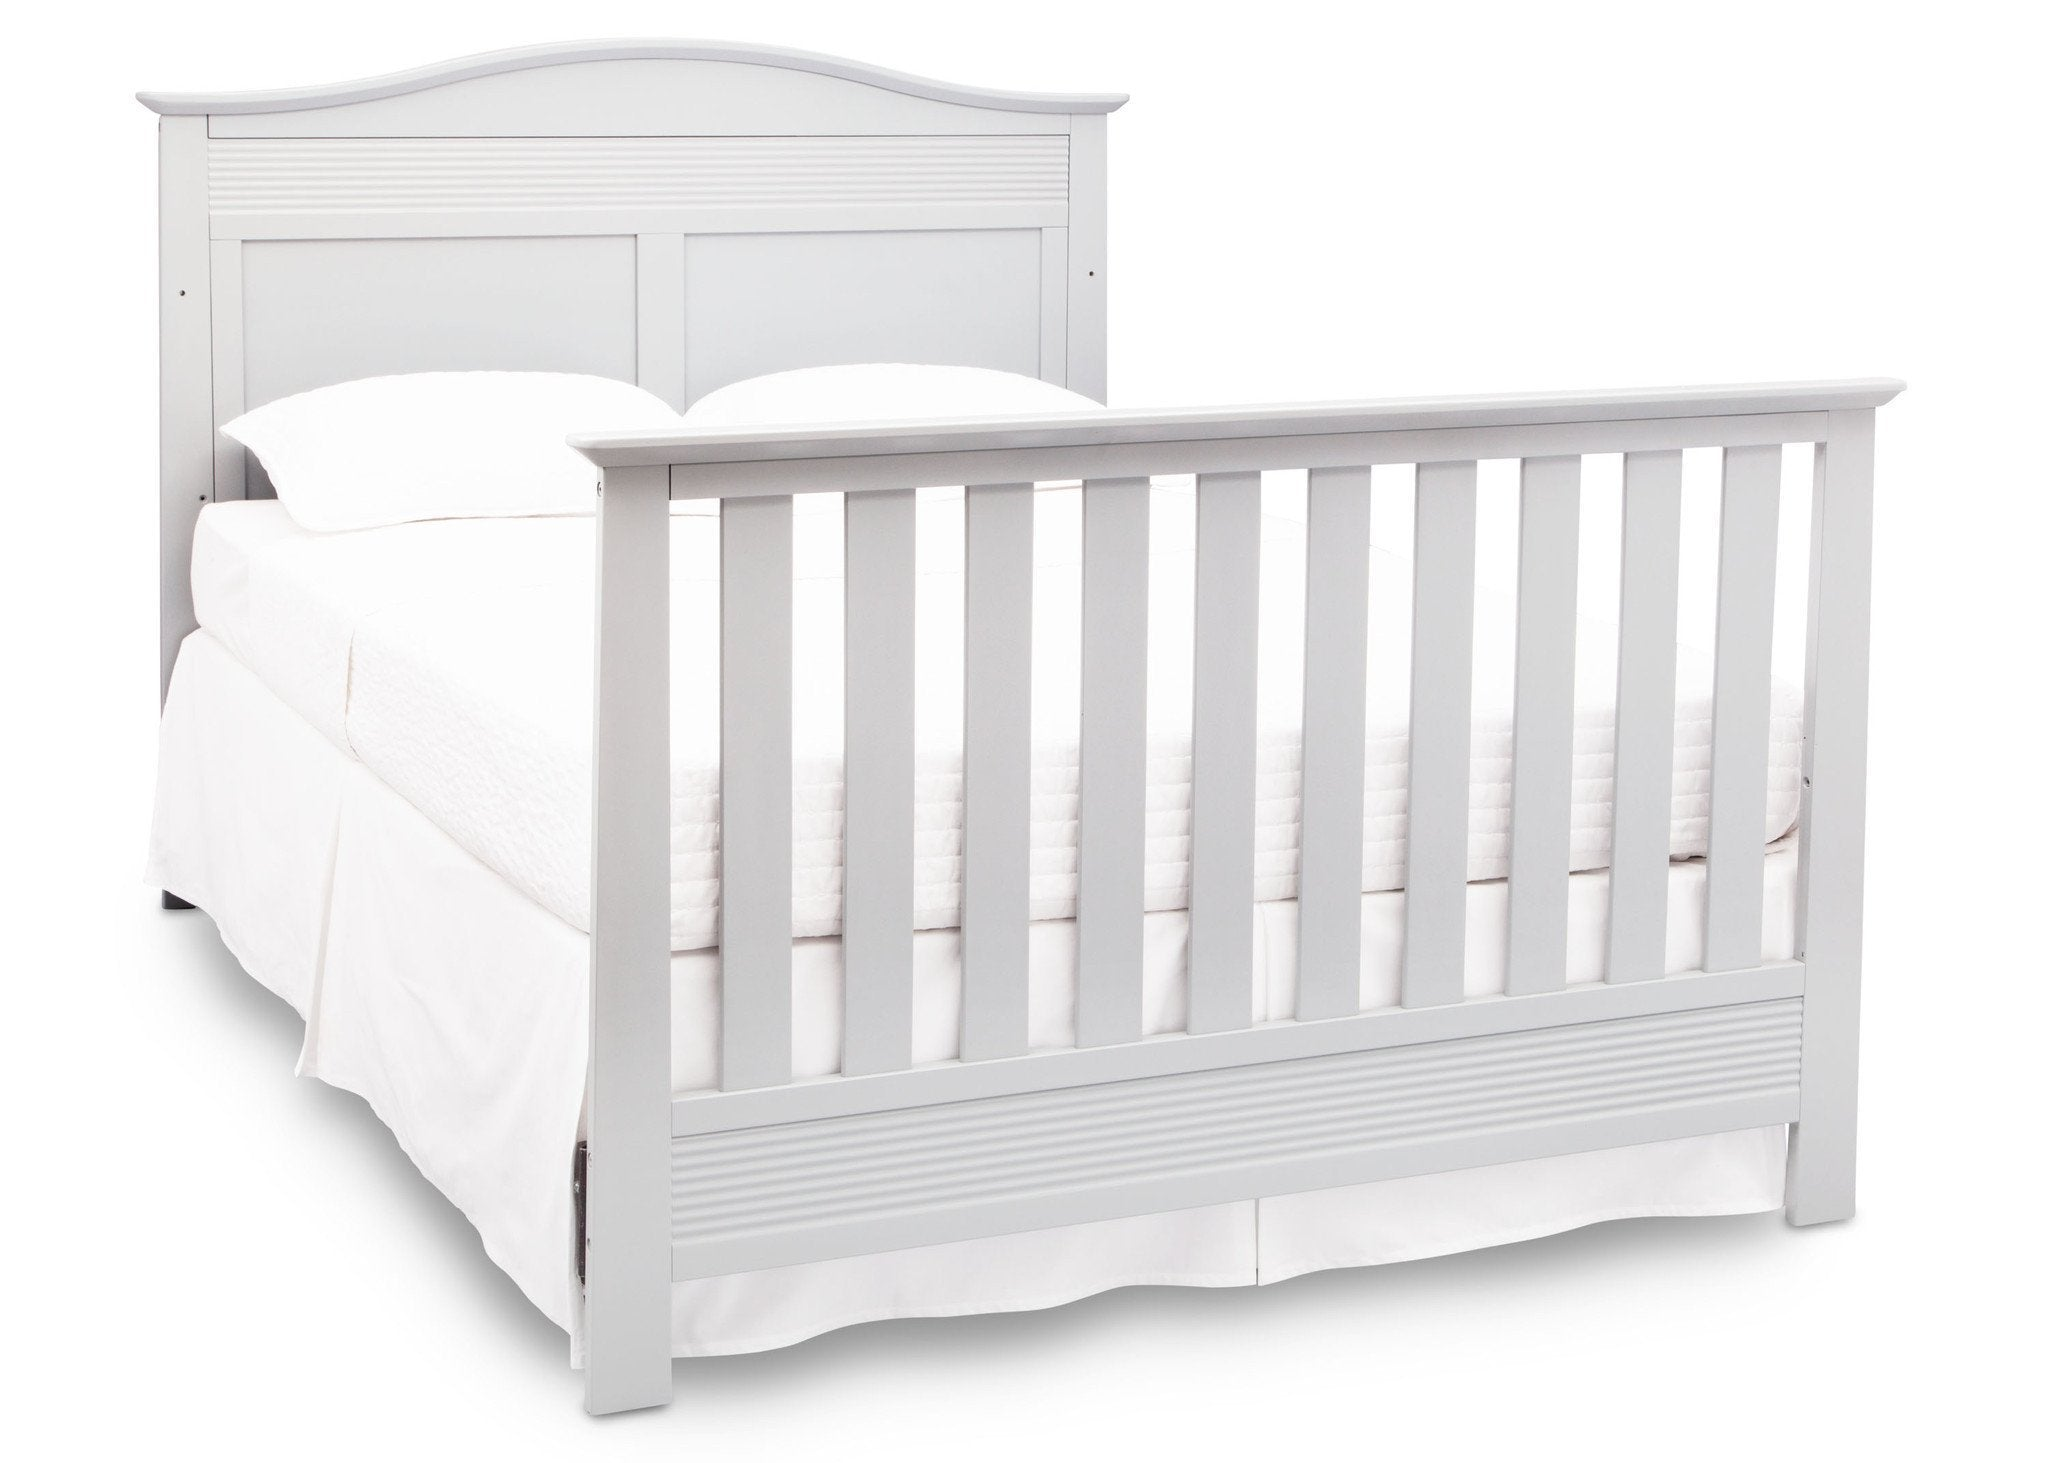 Serta Bianca White (130) Barrett 4-in-1 Convertible Crib, Right Full Bed View with Footboard b6b